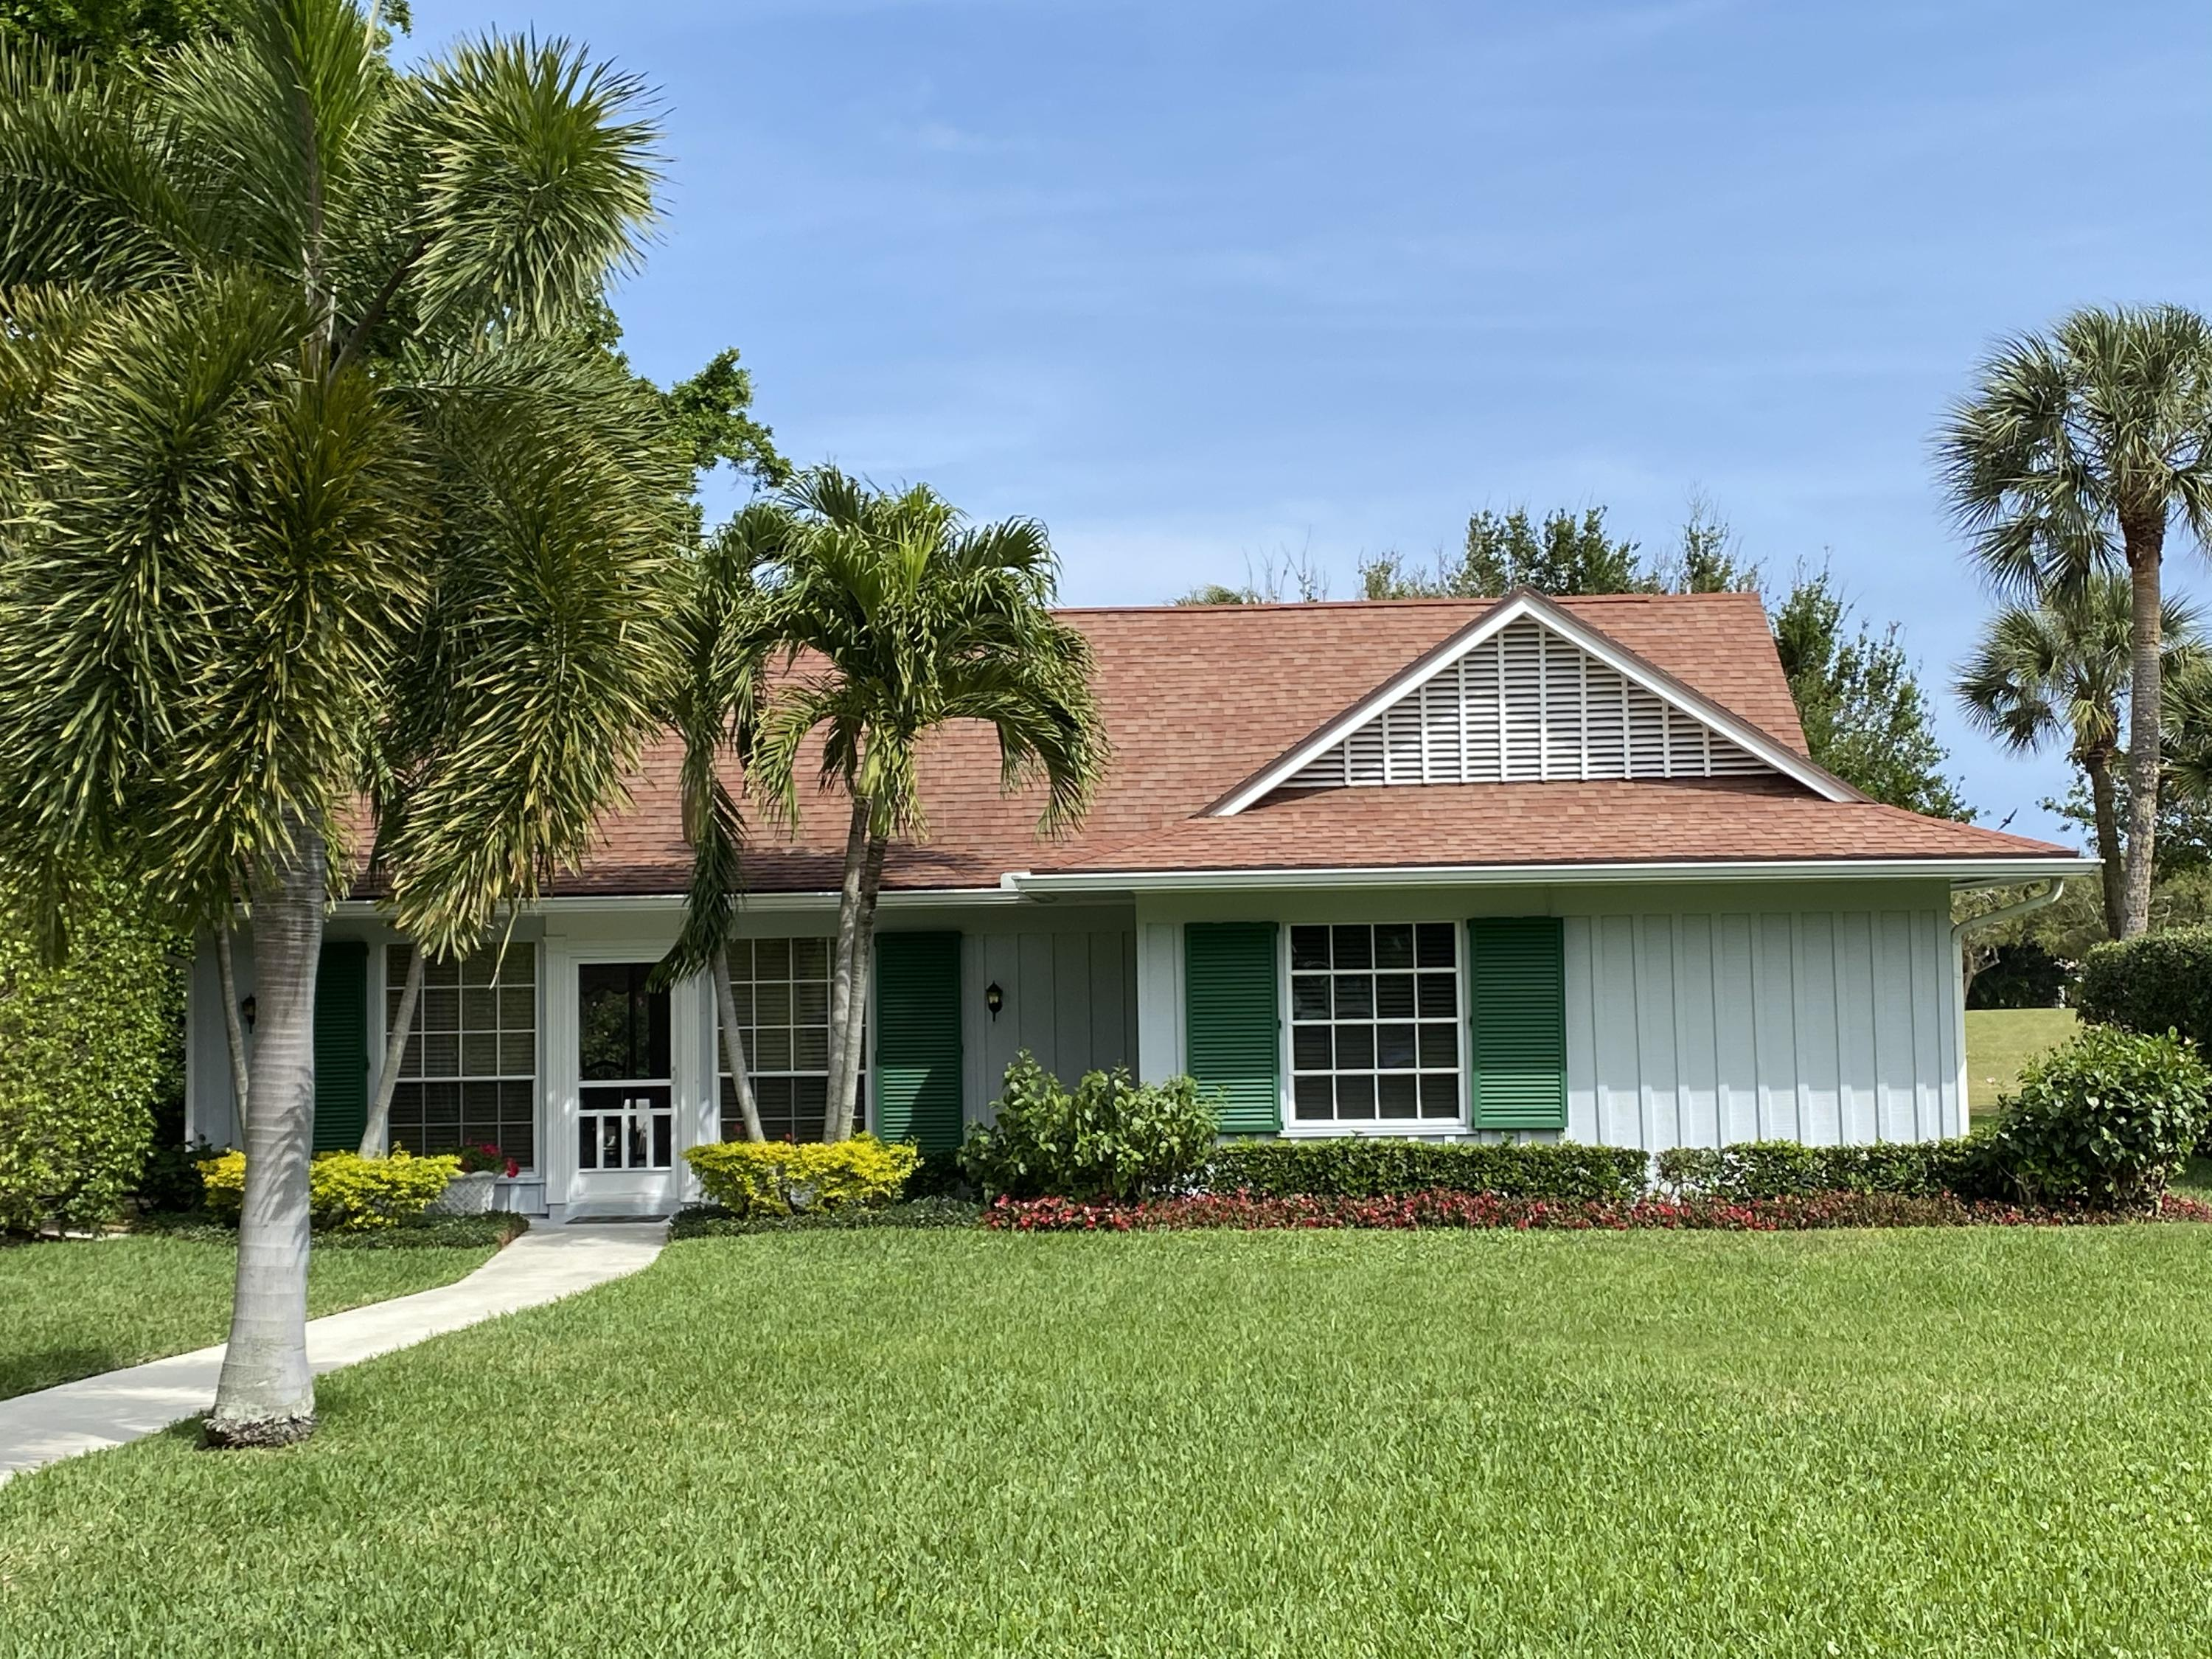 11632 Lost Tree Way 7, North Palm Beach, Florida 33408, 2 Bedrooms Bedrooms, ,2 BathroomsBathrooms,A,Single family,Lost Tree,RX-10609547